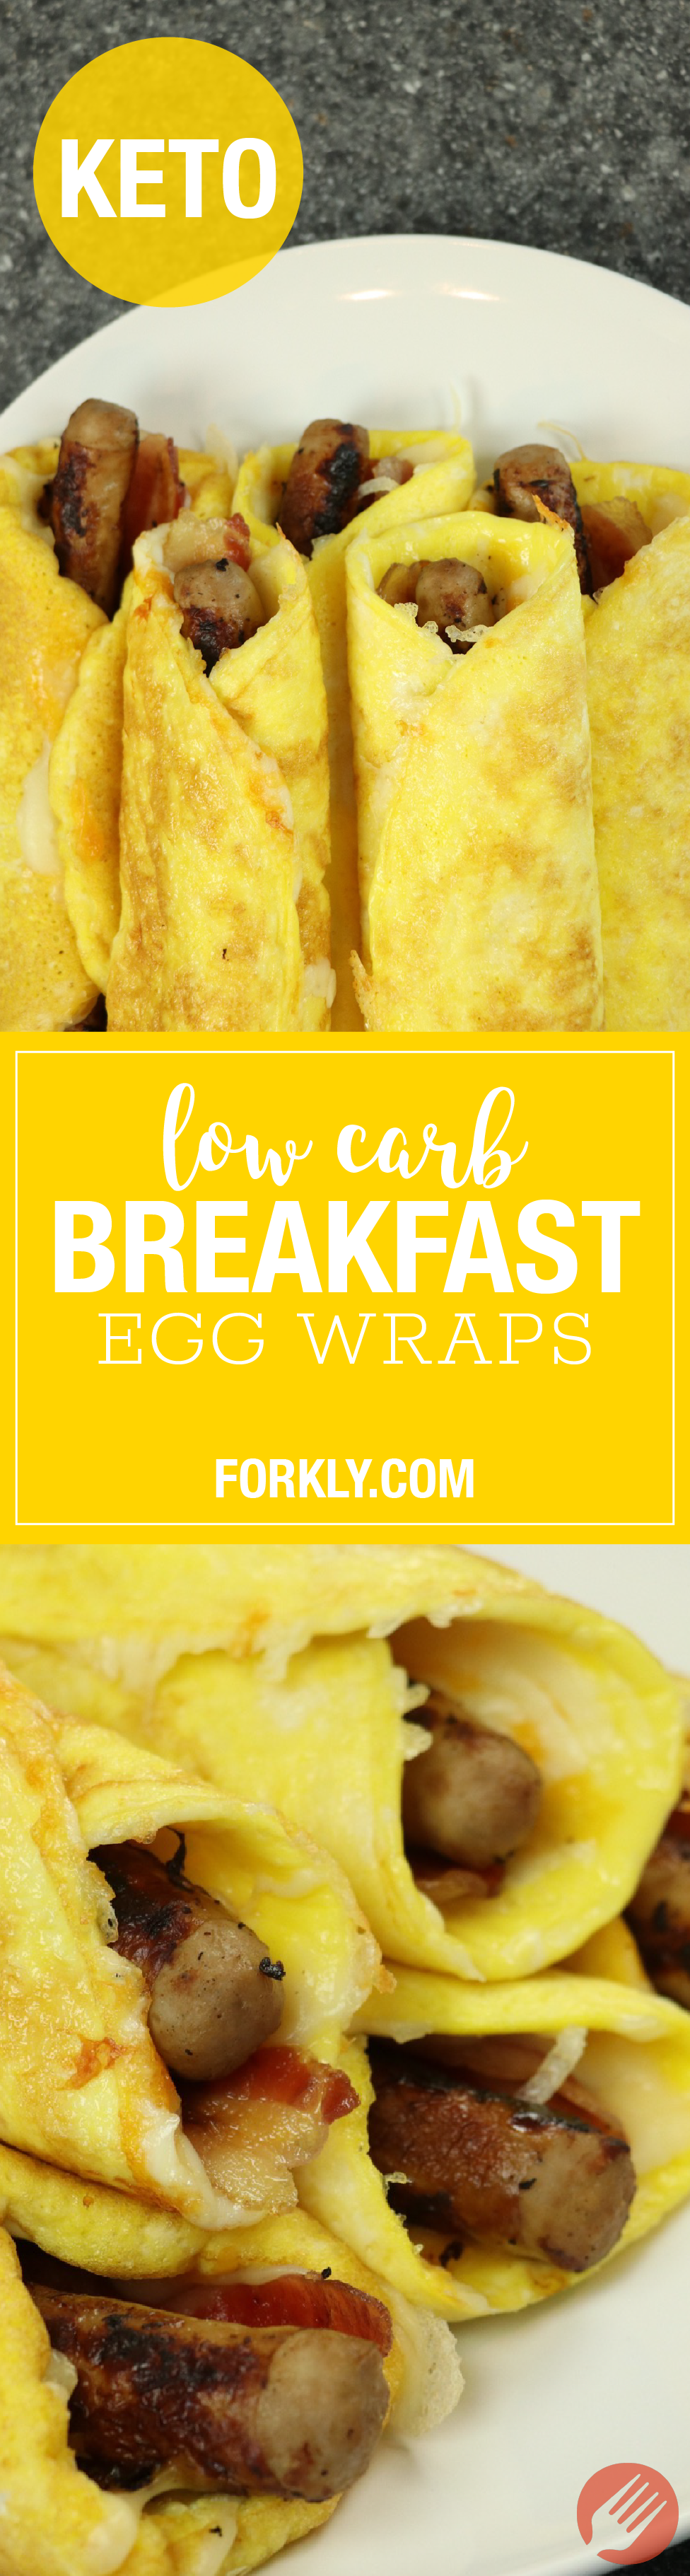 Low Carb Breakfast Egg Wraps : The high fat keto / ketogenic recipe that will have your breakfasts perfectly planned for a week.